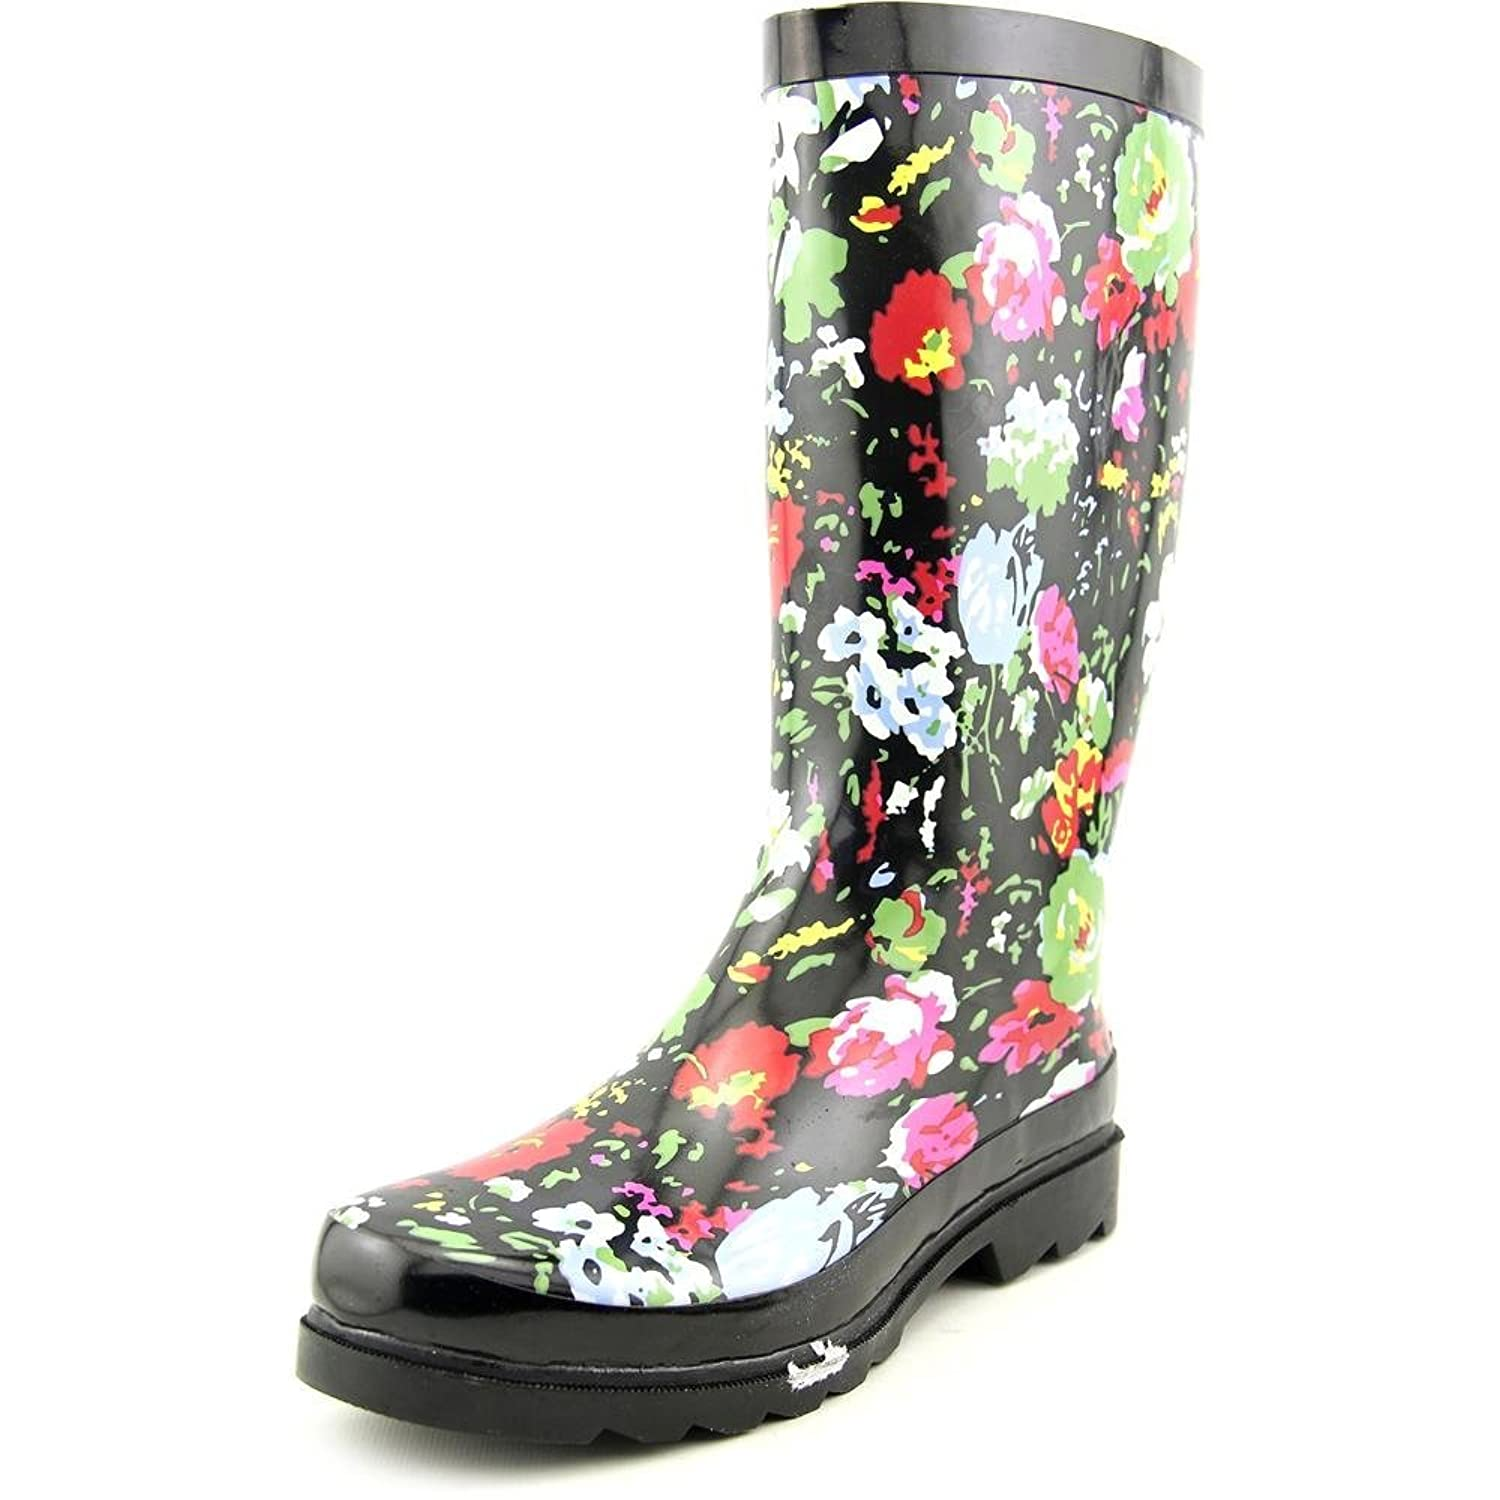 143 Girl Talory Women US 8 Black Rain Boot